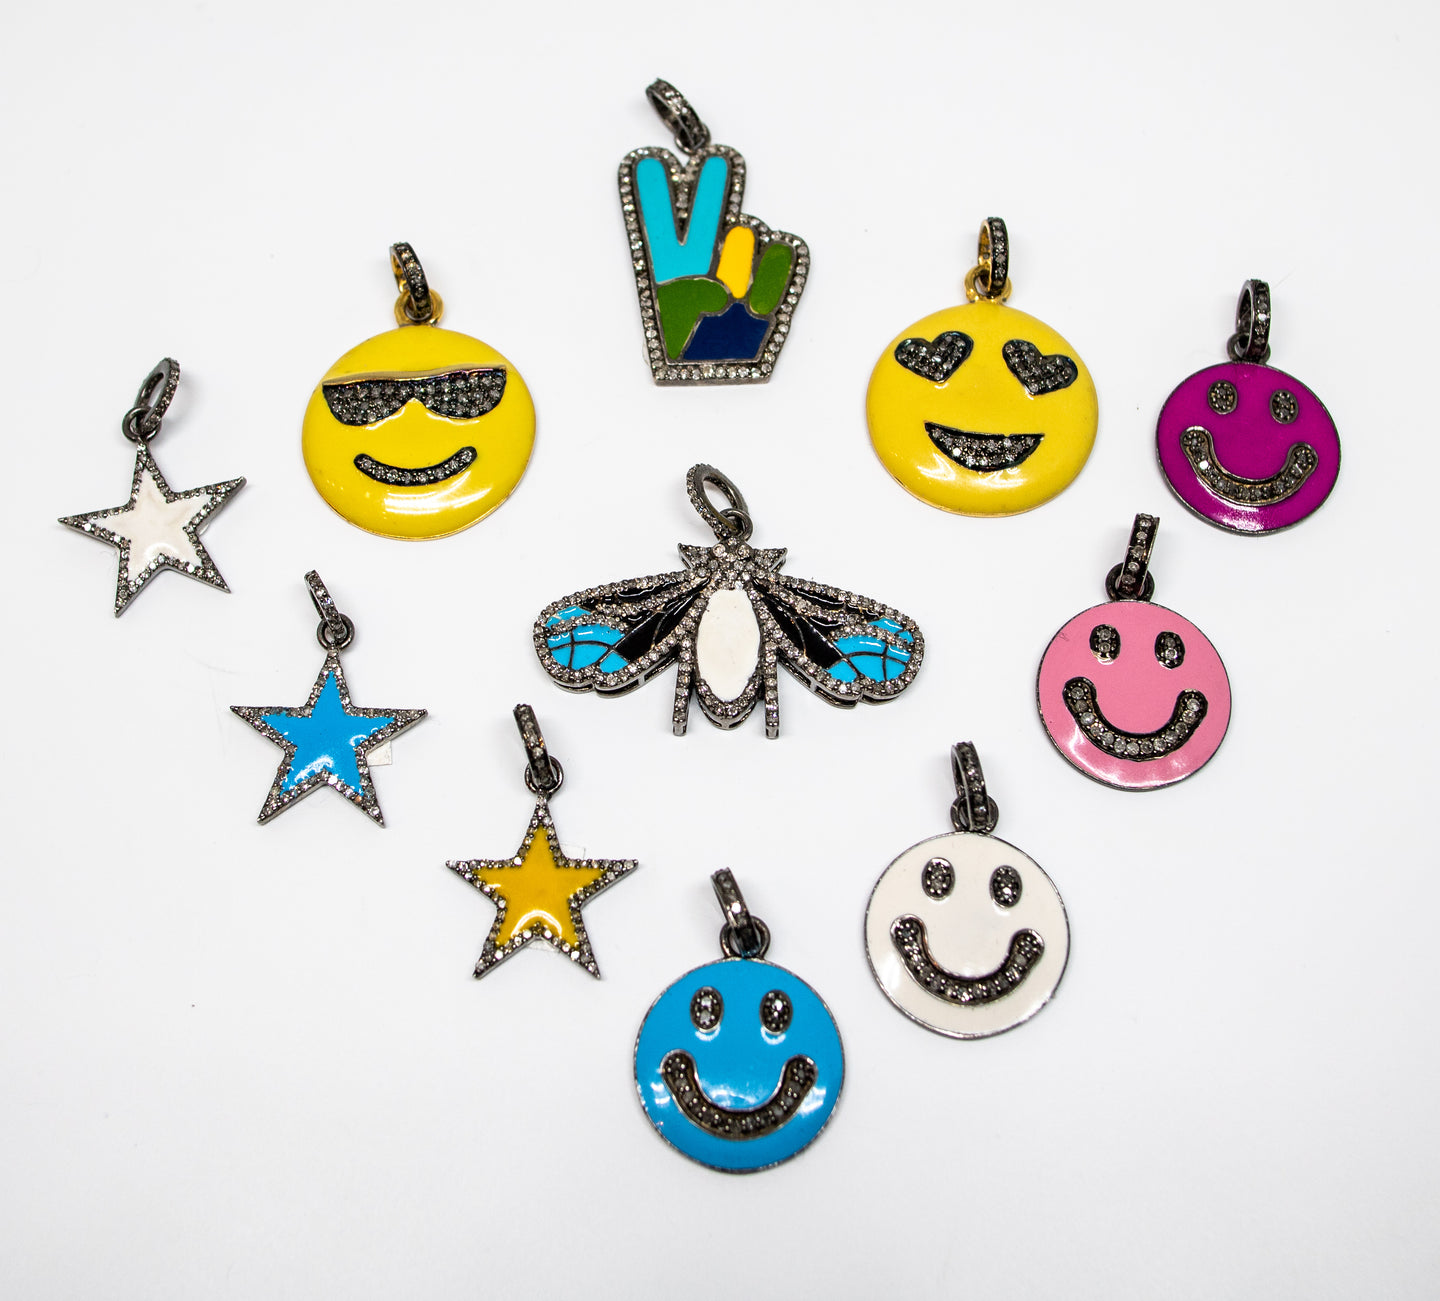 Silver & Enamel Colorful Charms with Diamonds